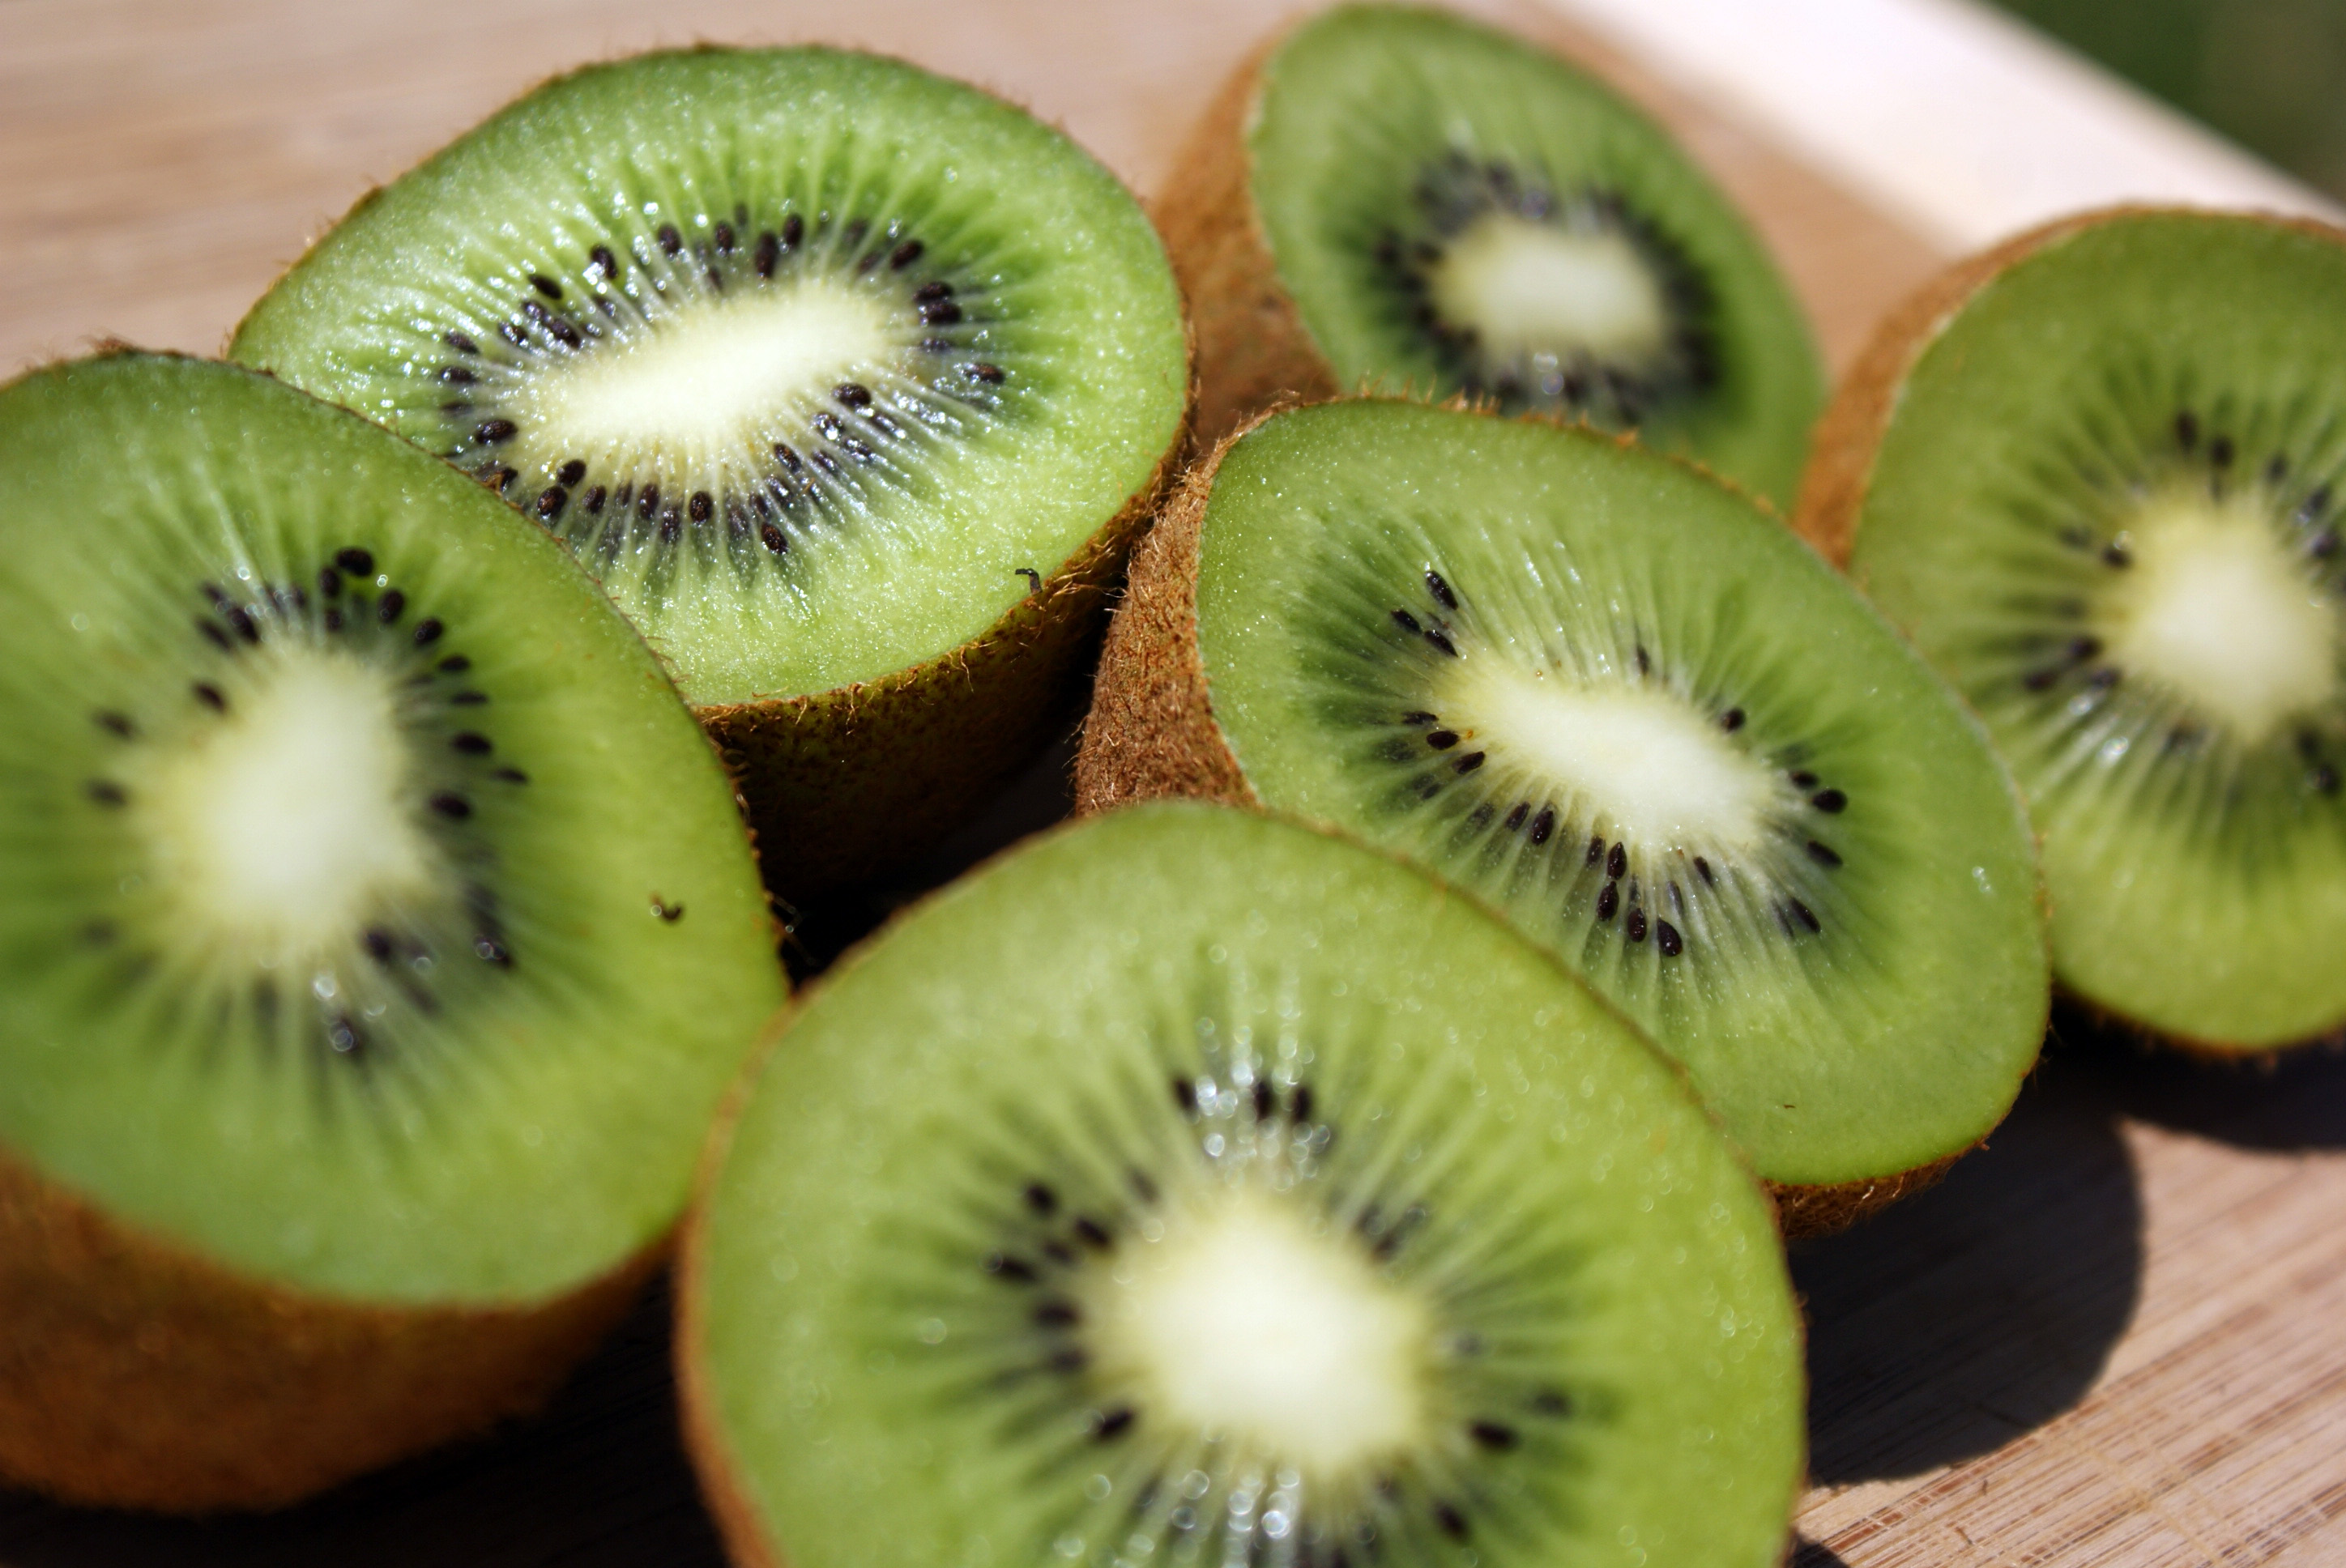 """Benefits Of Kiwi On Health,"" a new report on the website HealthReviewCenter.com uncovers health and nutrition benefits of kiwi, and some reasons to eat it. (image: Kyle McDonald/Flickr)"